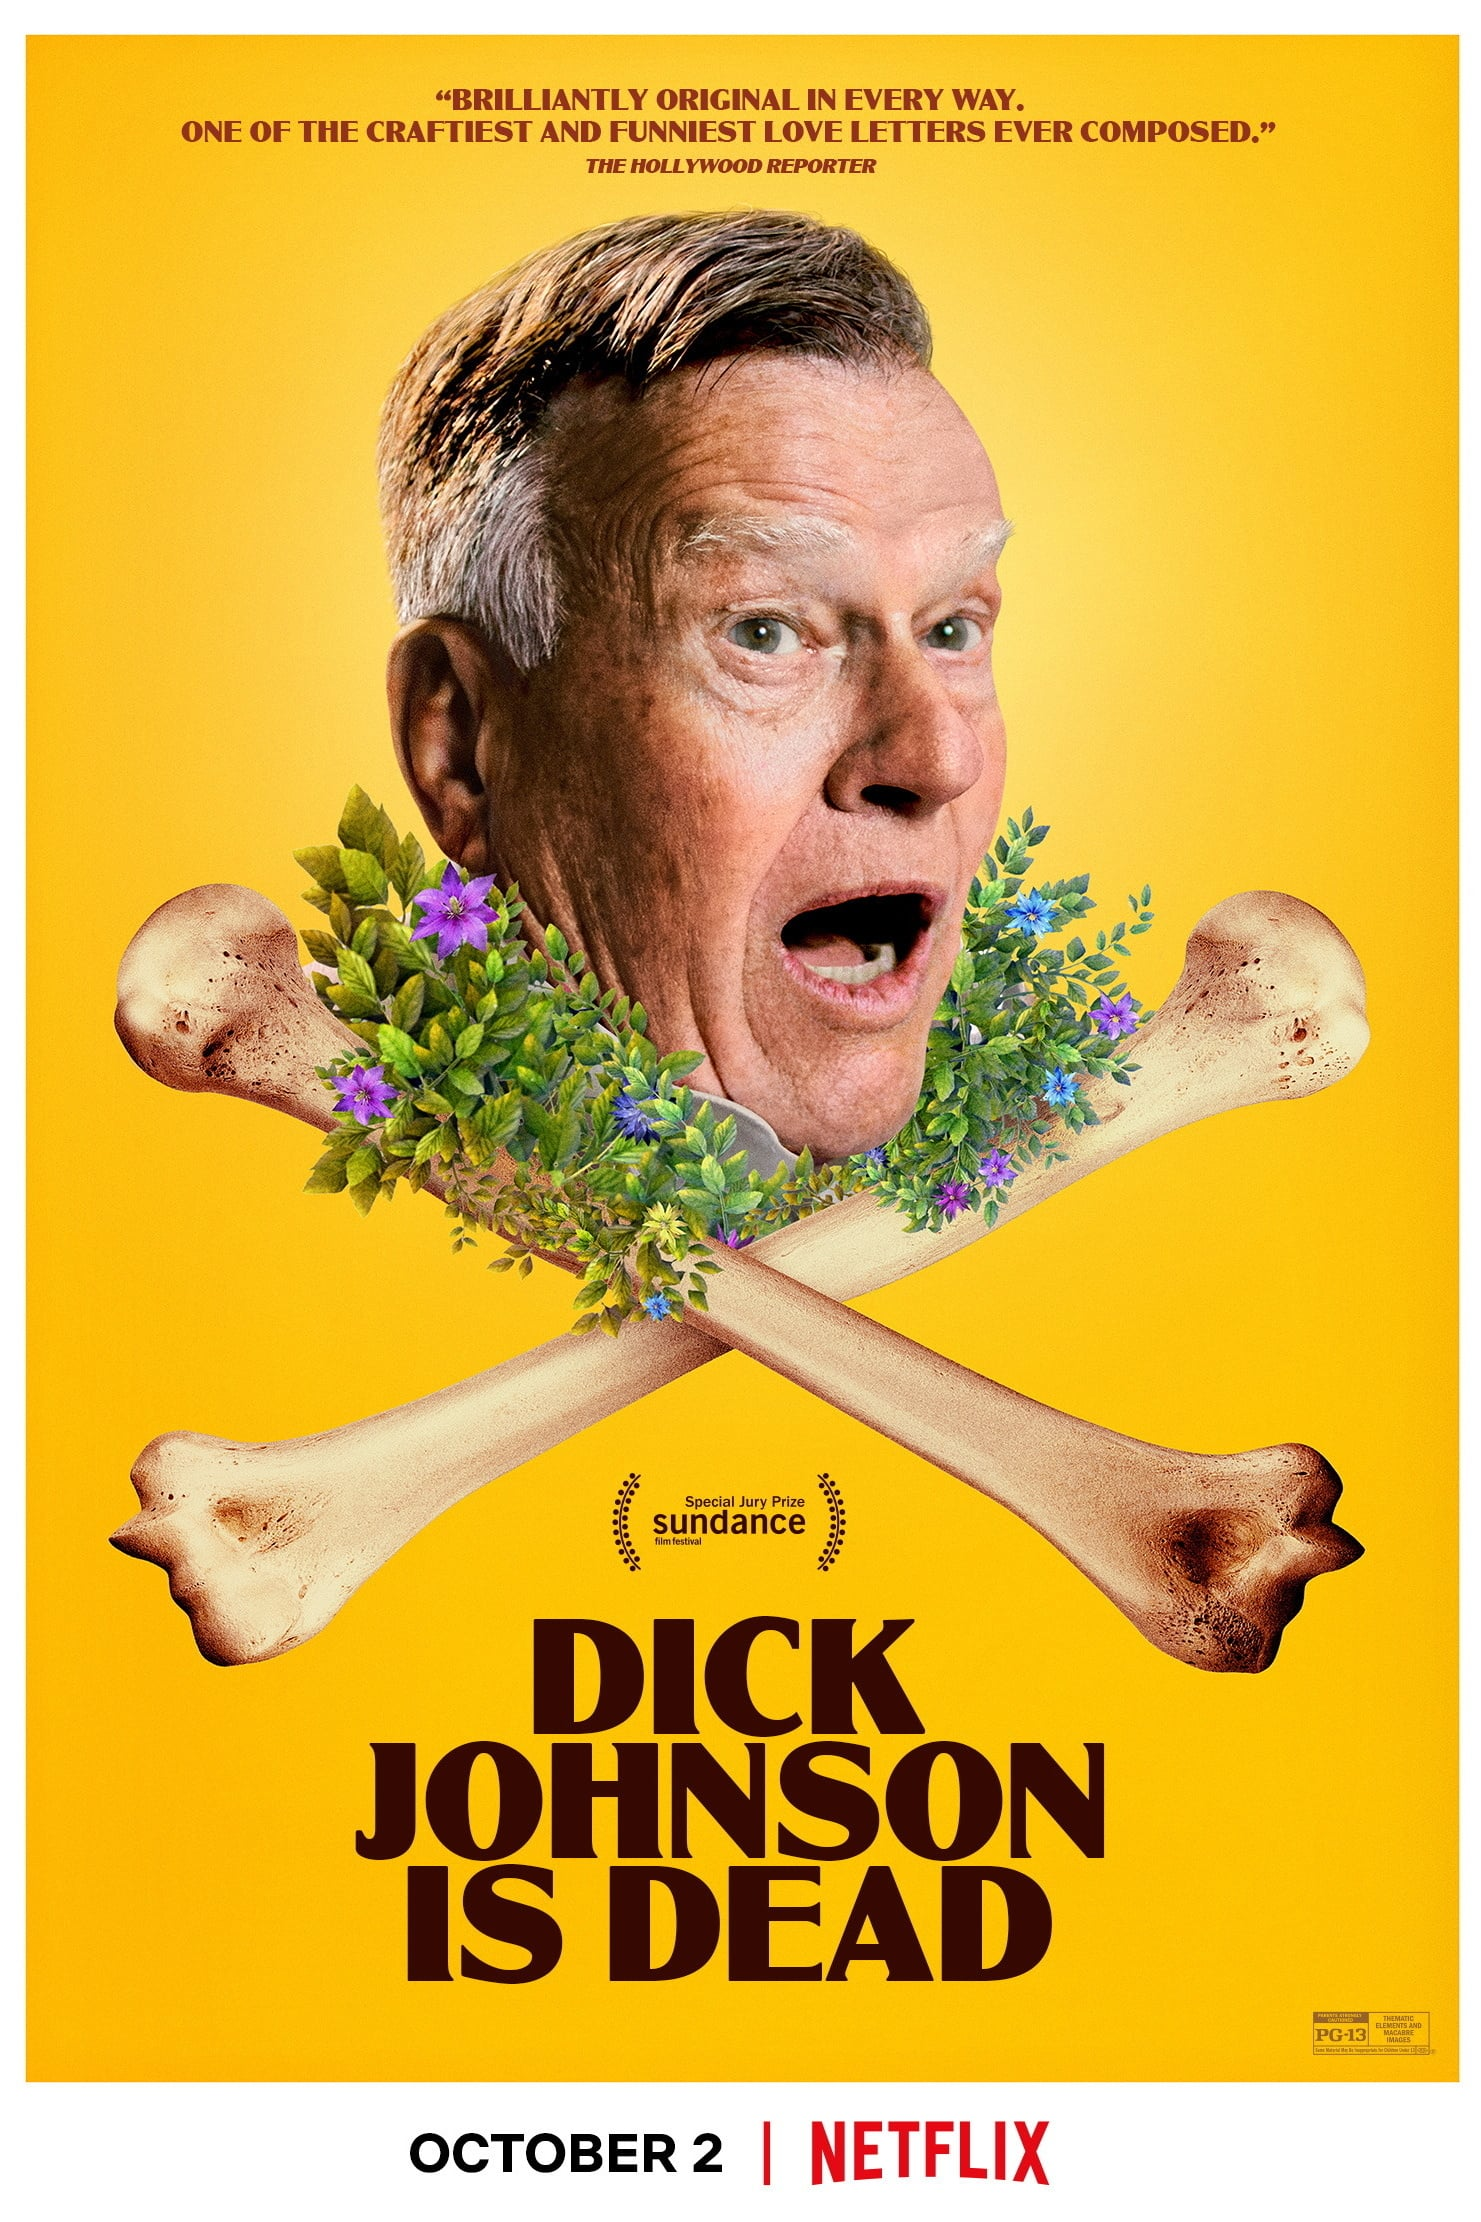 Dick Johnson Is Dead poster